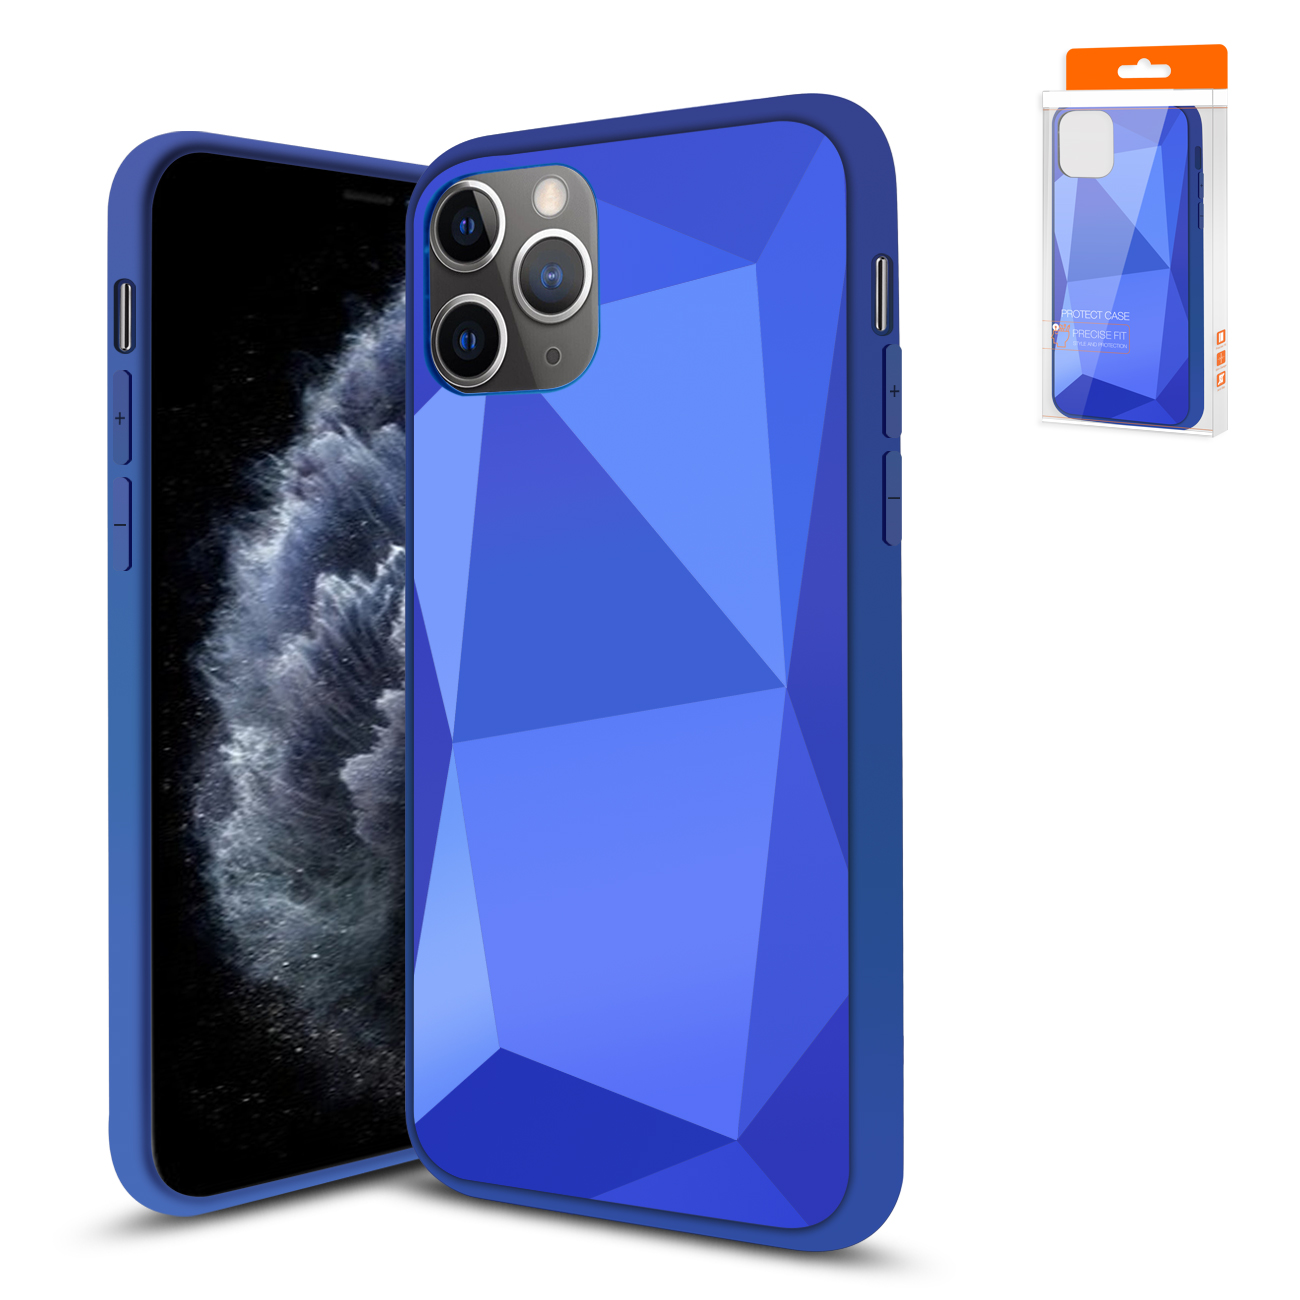 Apple iPhone 11 Pro Max Apple Diamond Cases In Blue